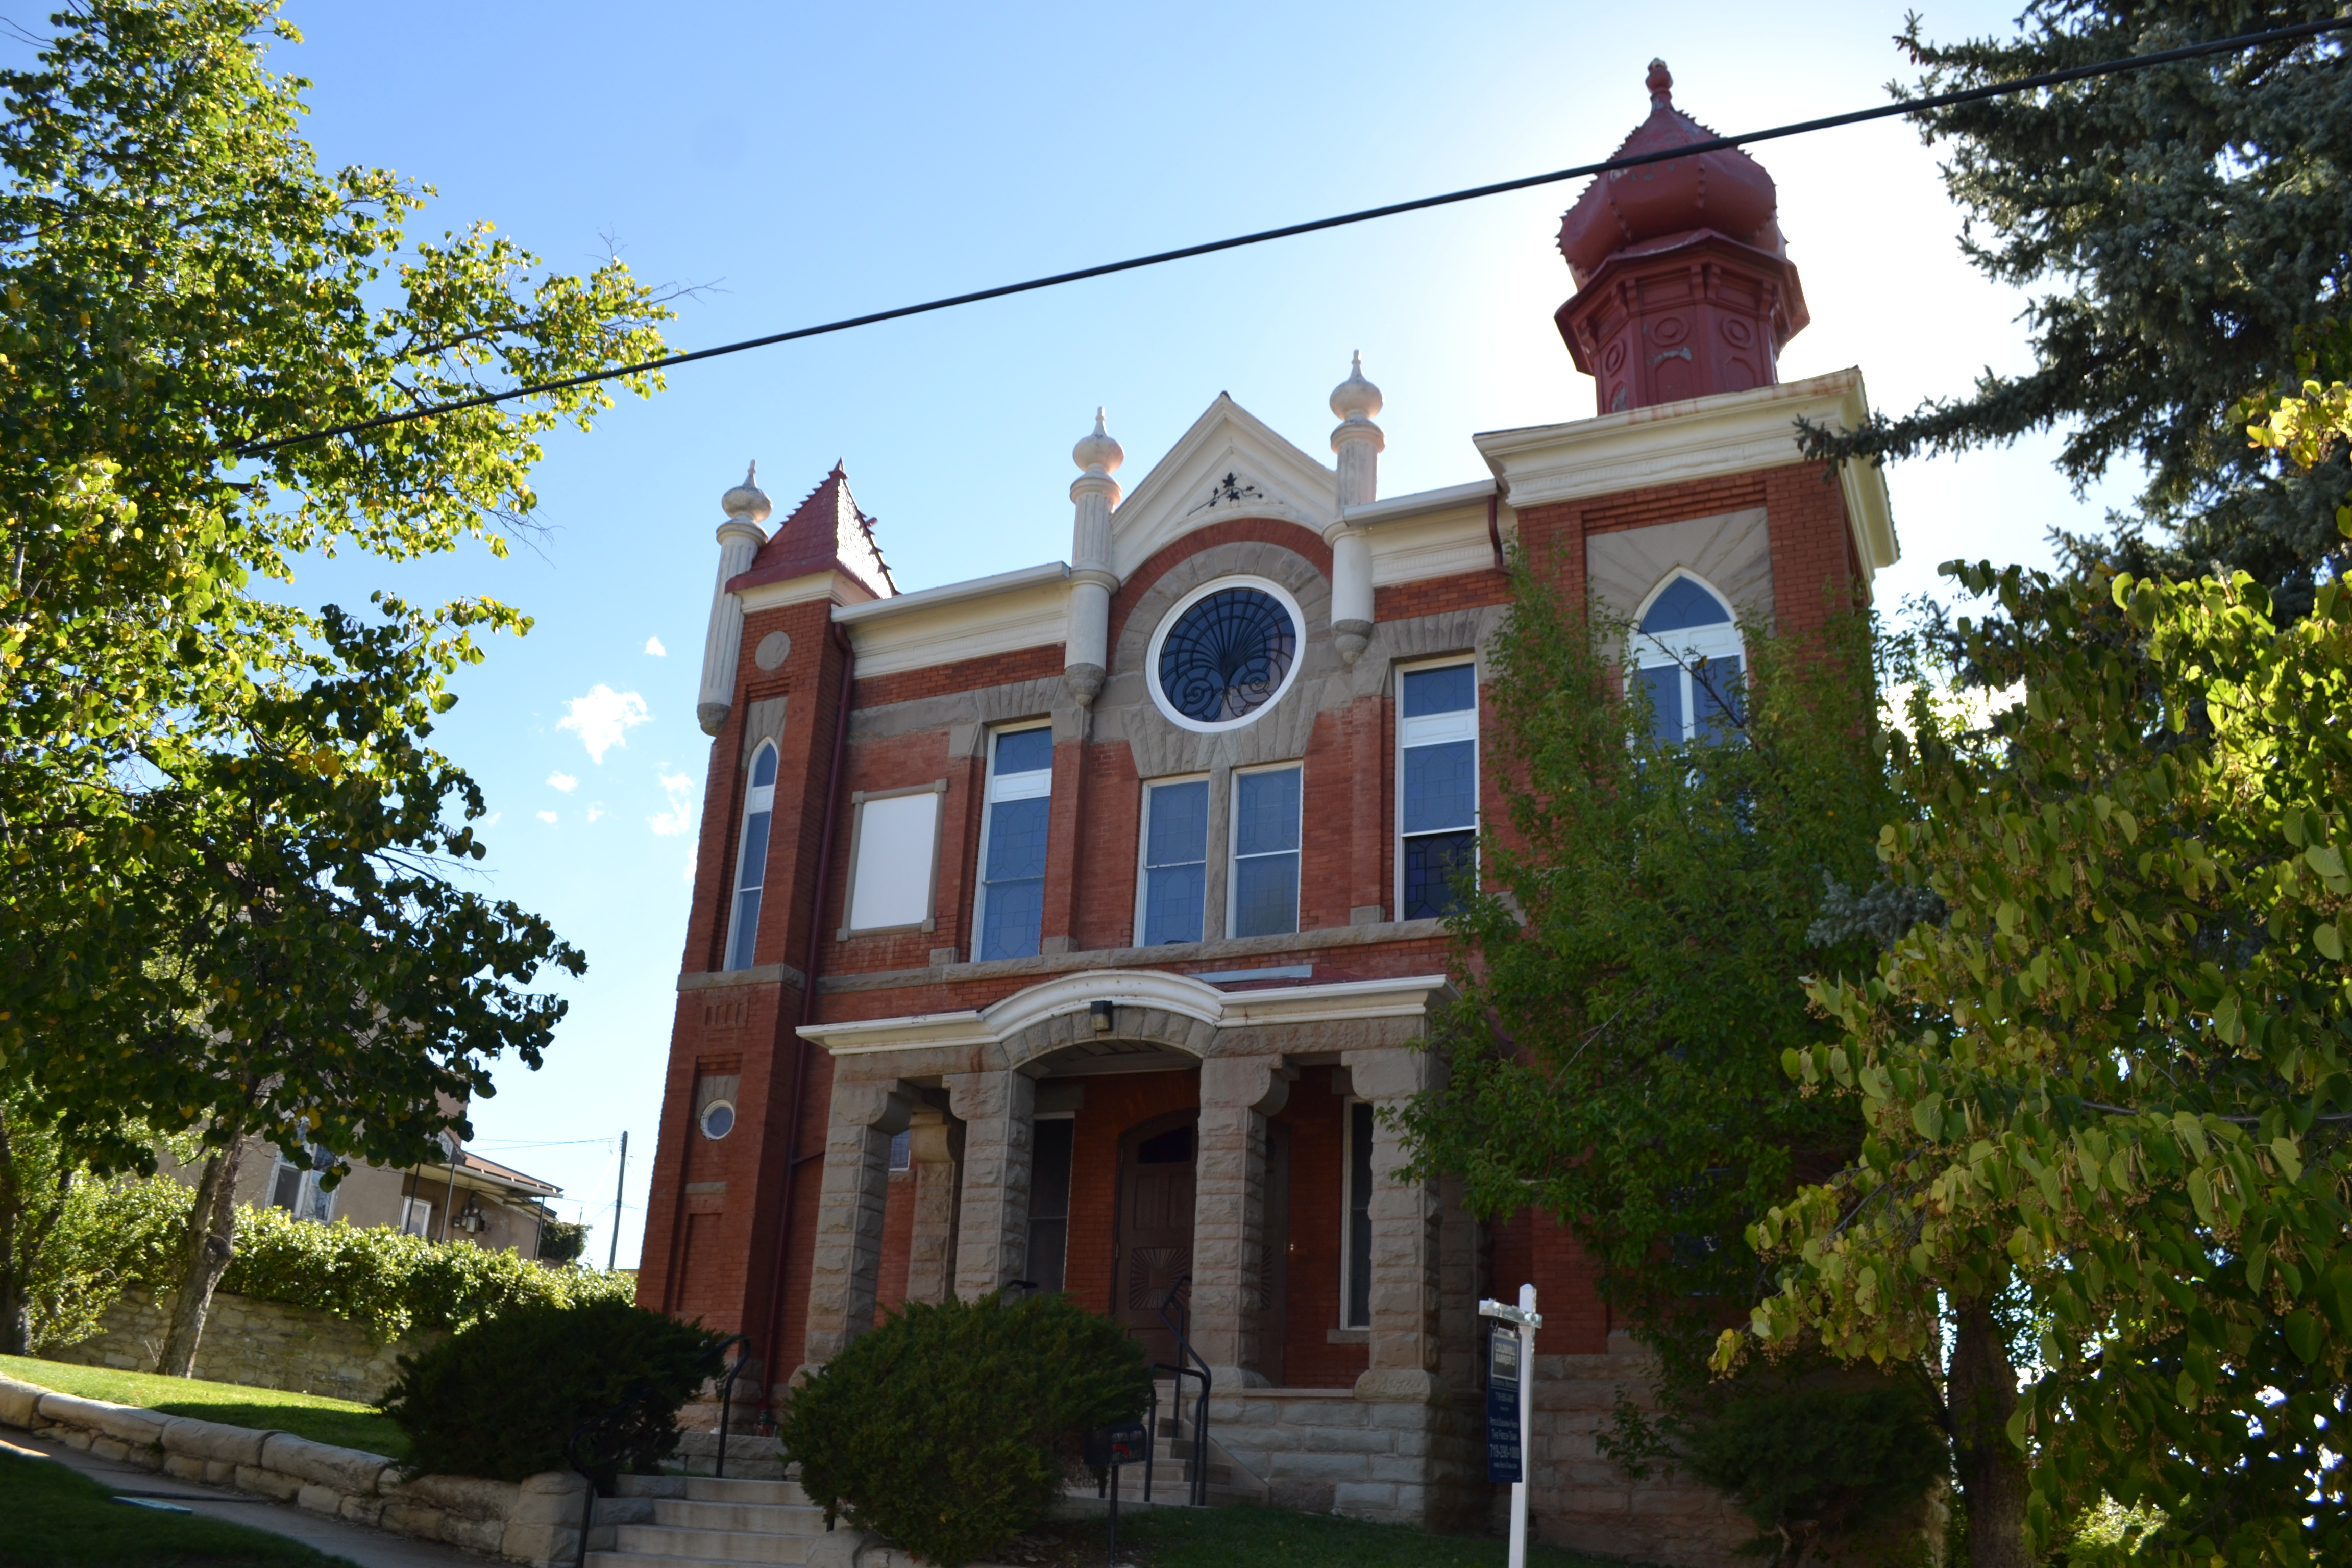 <p>Temple Aaron in Trinidad is the state's oldest continuously operating synagogue. It closedSept. 24 after 127 years.</p>